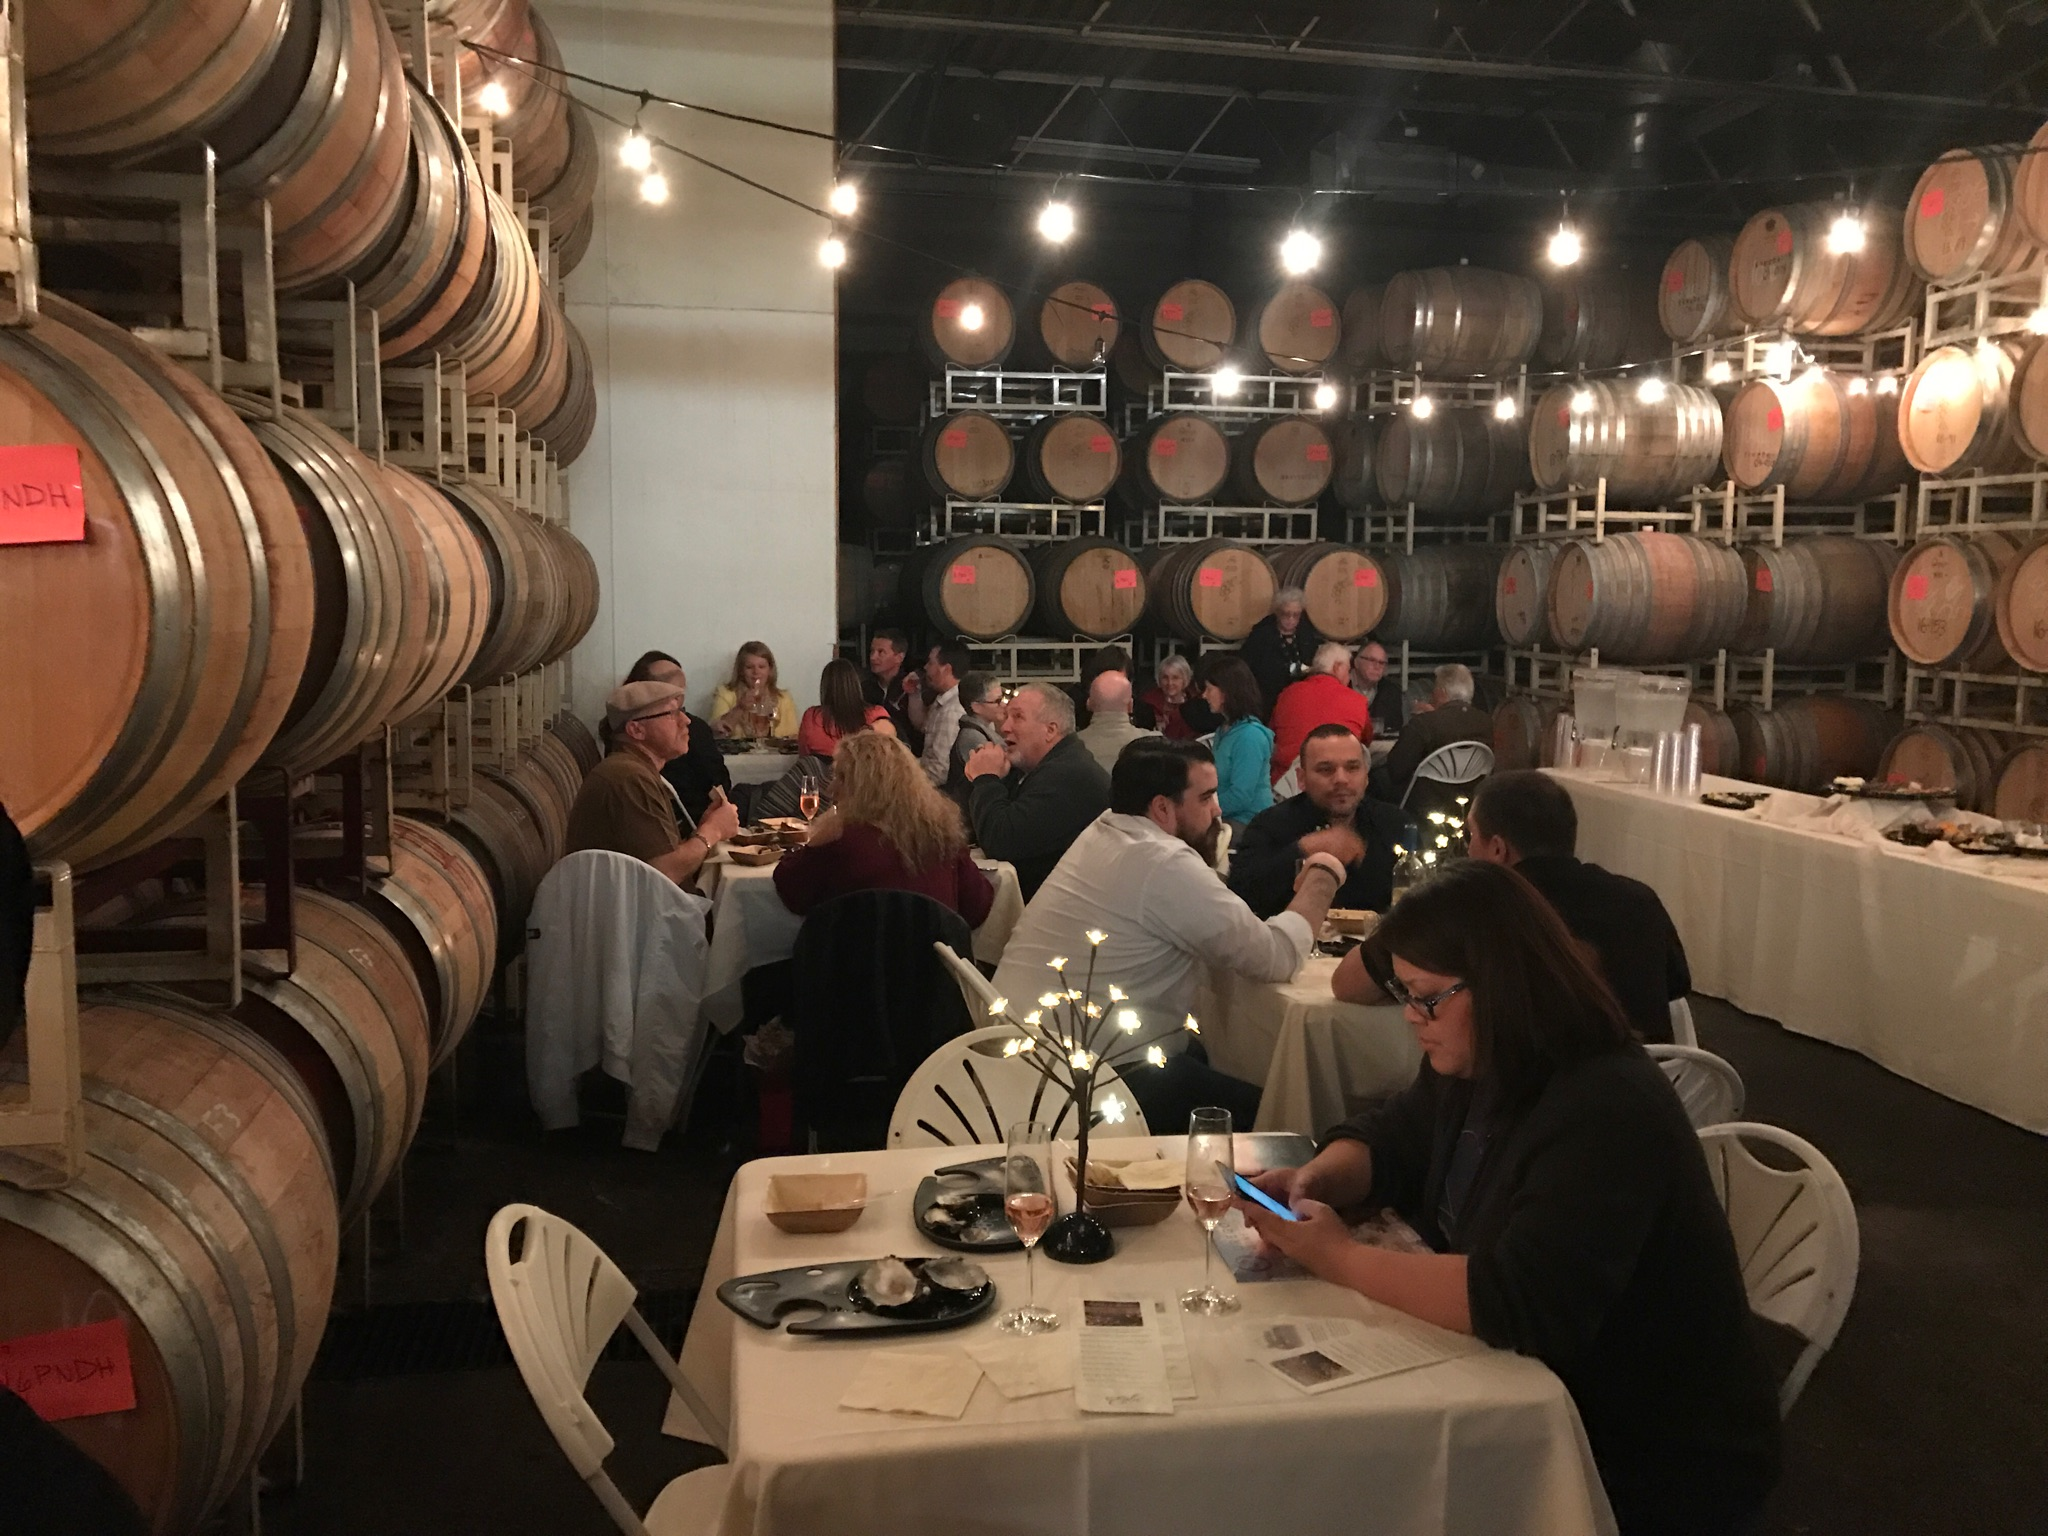 Eola Hills Wine Cellars Invests in Local Fermentation Future by Hosting April 22 Pinot Noir and Chocolate Event & Eola Hills Wine Cellars Invests in Local Fermentation Future by ...